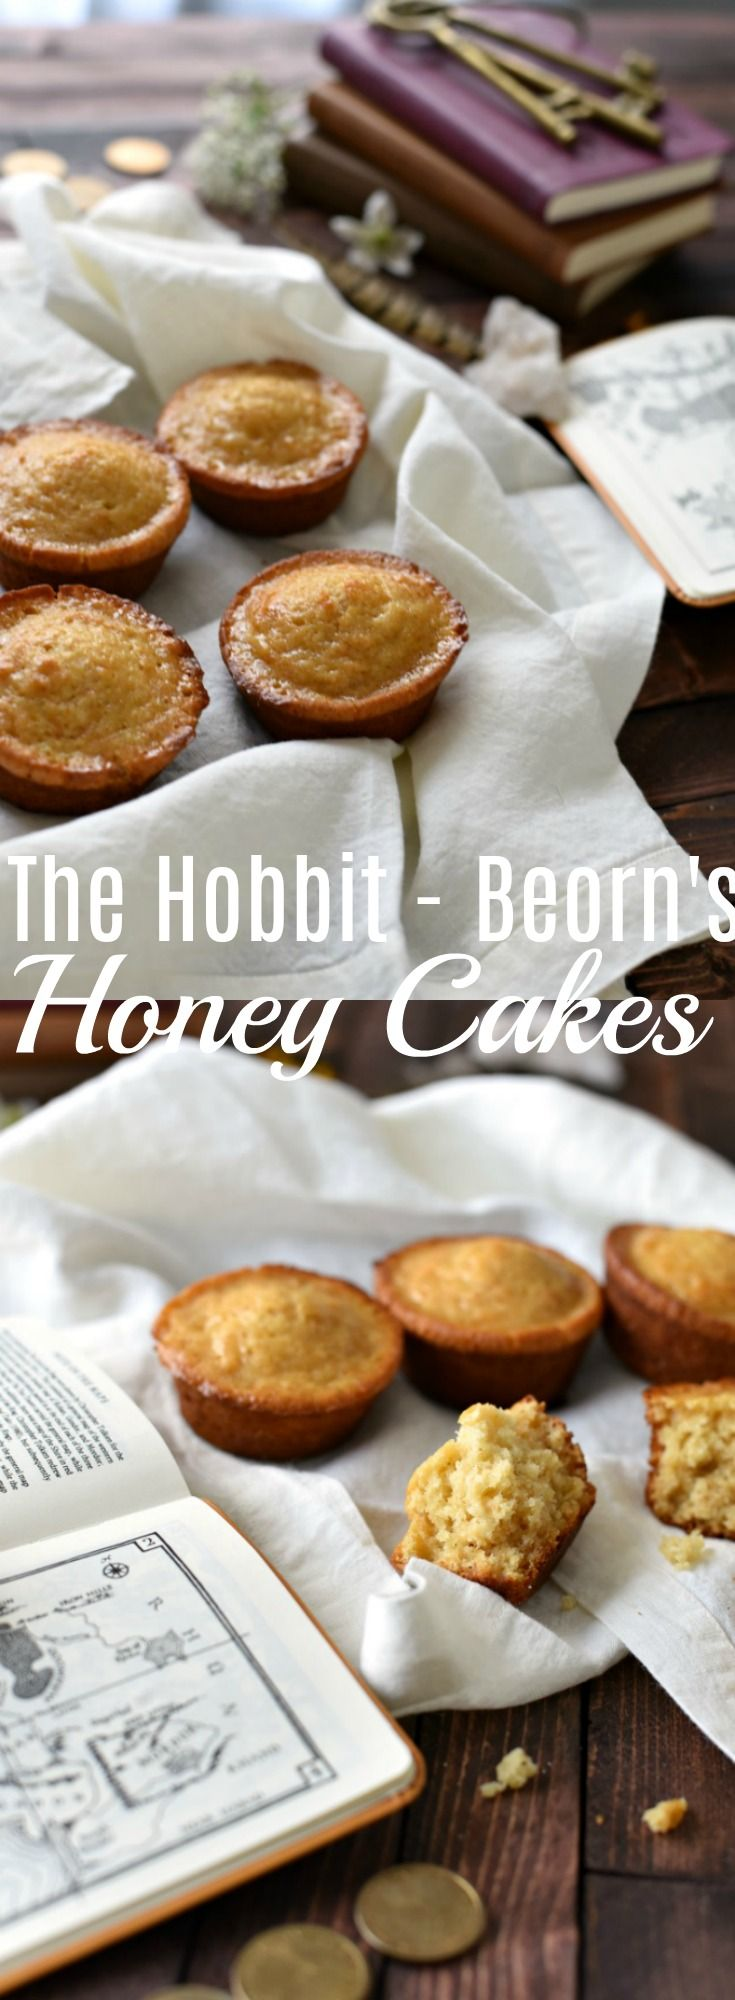 These twice baked honey cakes are slightly crispy on the outside, but dense and moist on the inside, plus full of amazing honey flavor. This Hobbit inspired cake recipe is a perfect treat for breakfast, dessert, or an afternoon snack!  From The Hobbit - Beorn's Honey -Cakes -  Lord of the Rings Recipe